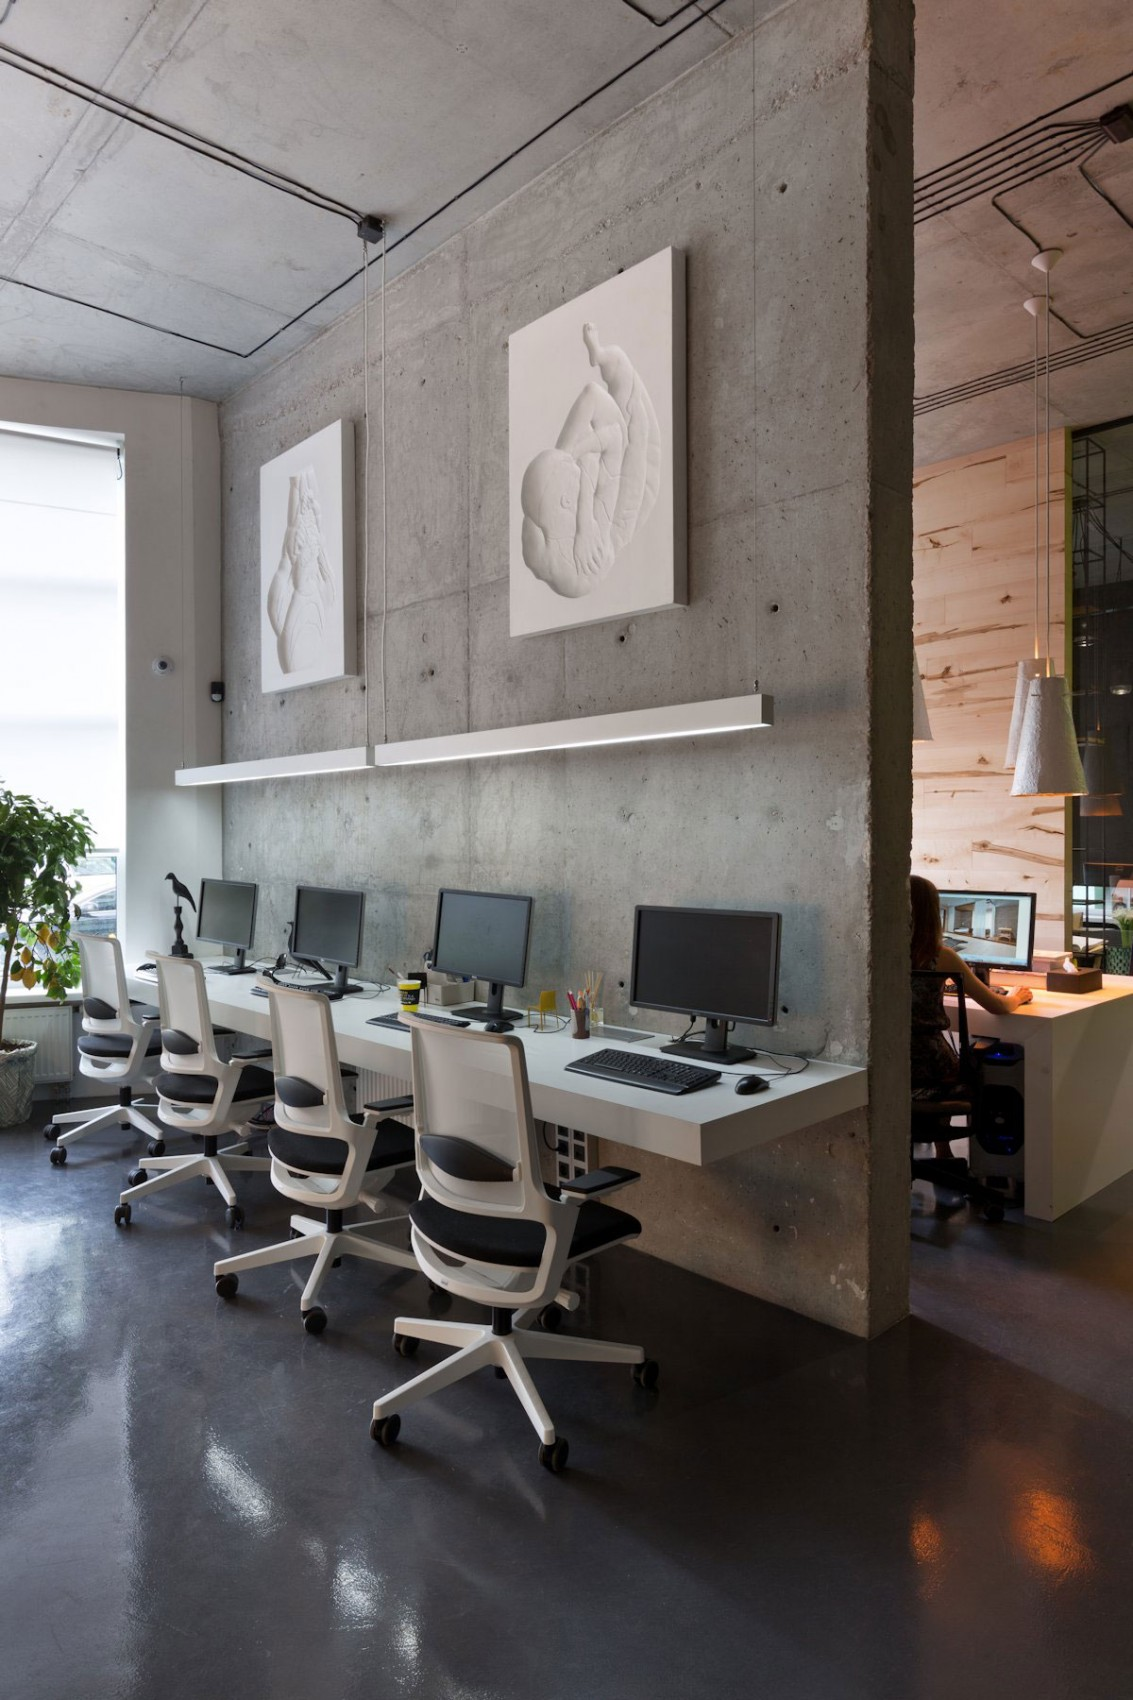 5 WAYS YOU CAN MAKE YOUR WORKSPACE WORK FOR YOU!